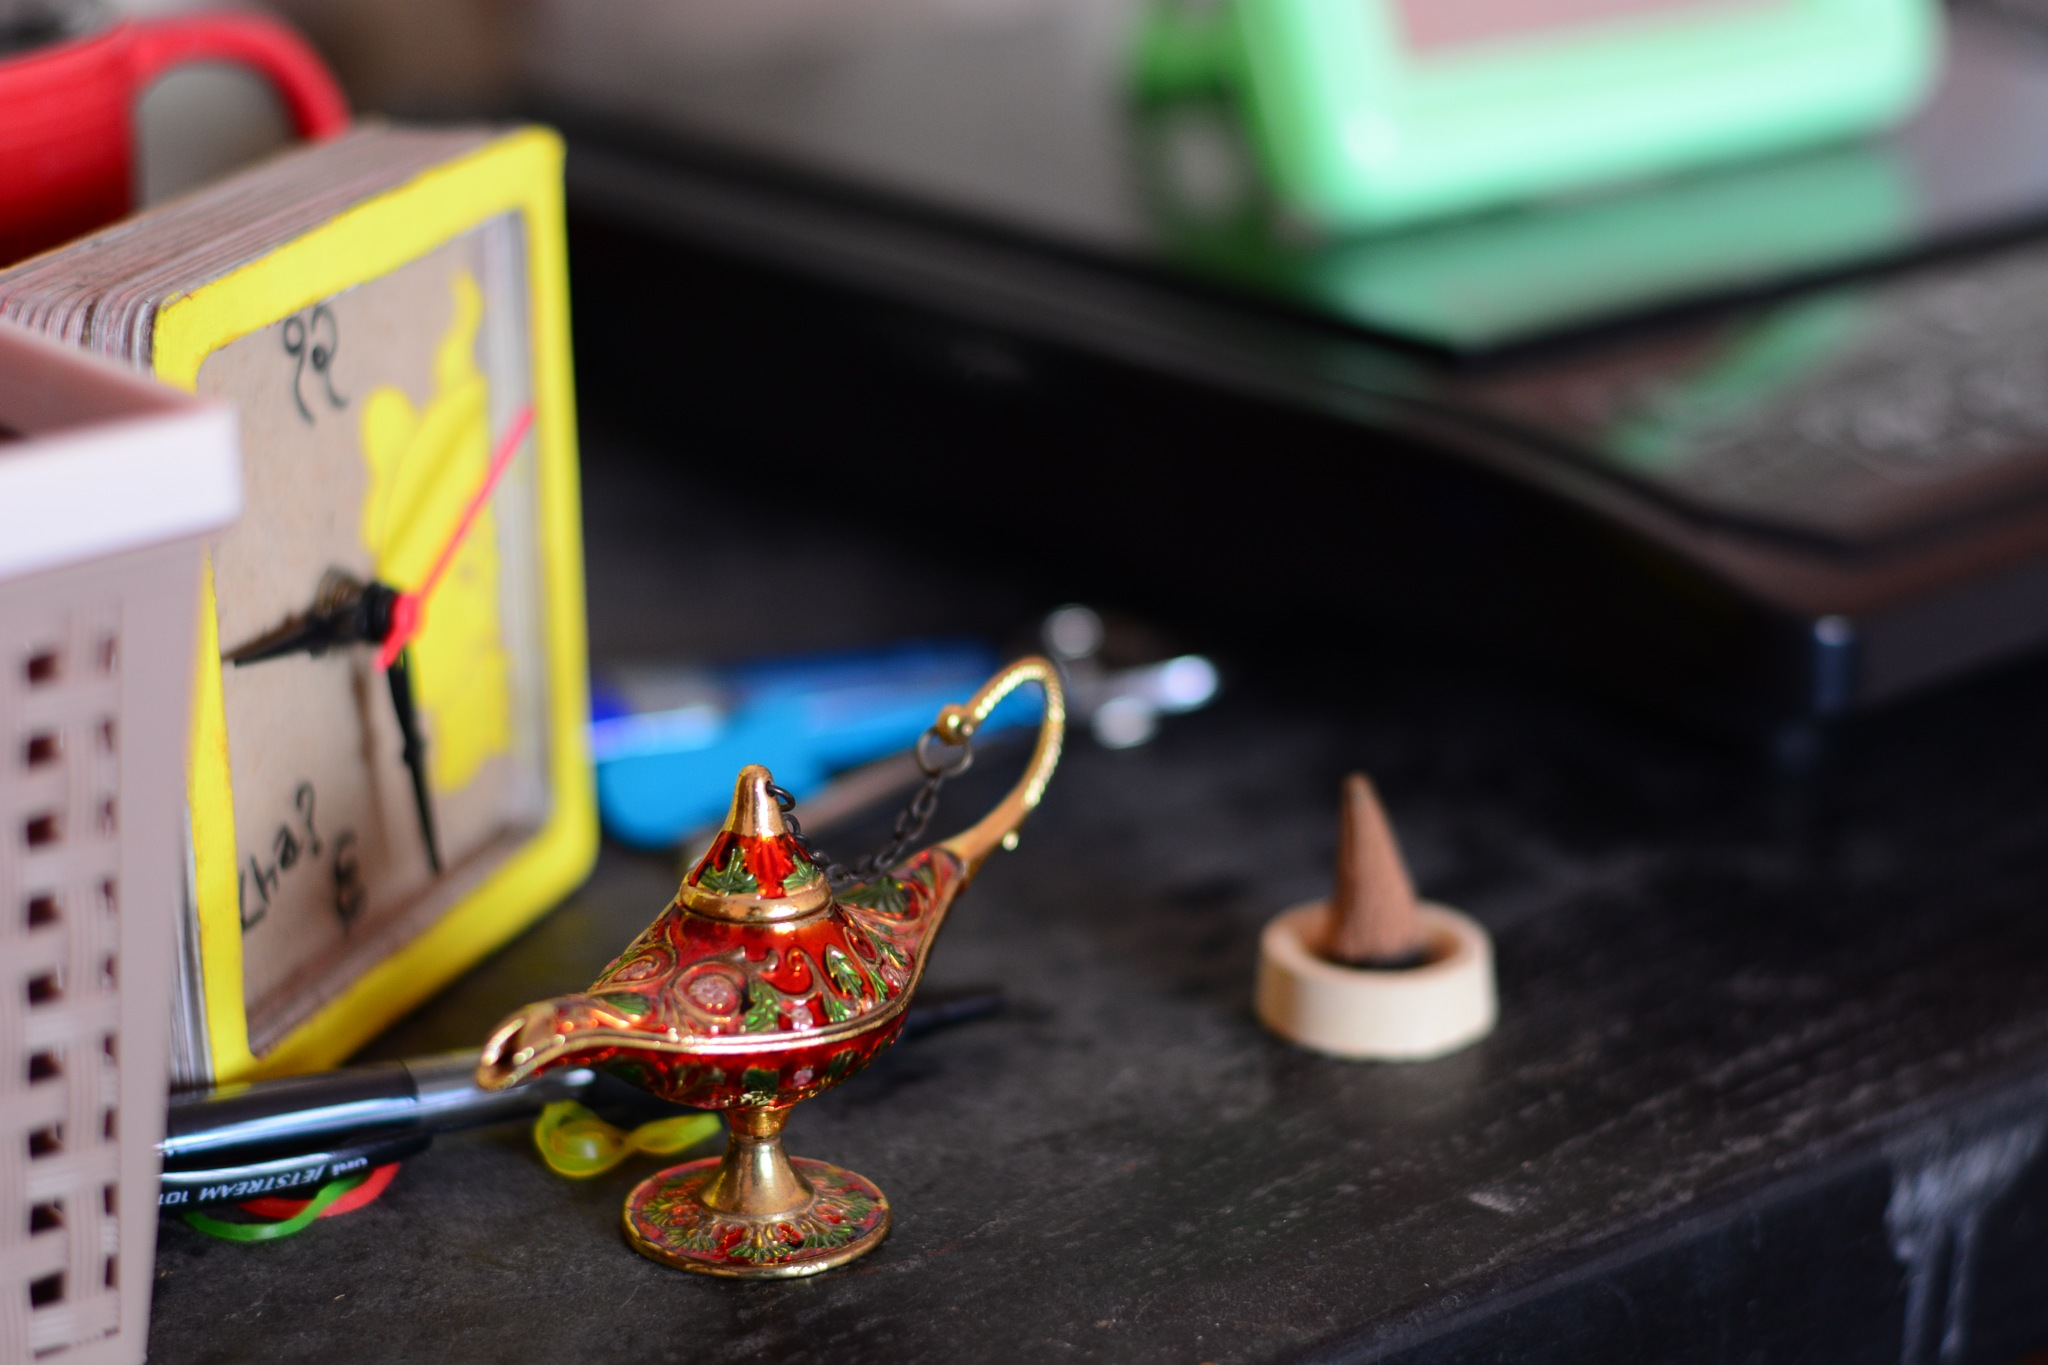 magic lamp by vivek pradhan